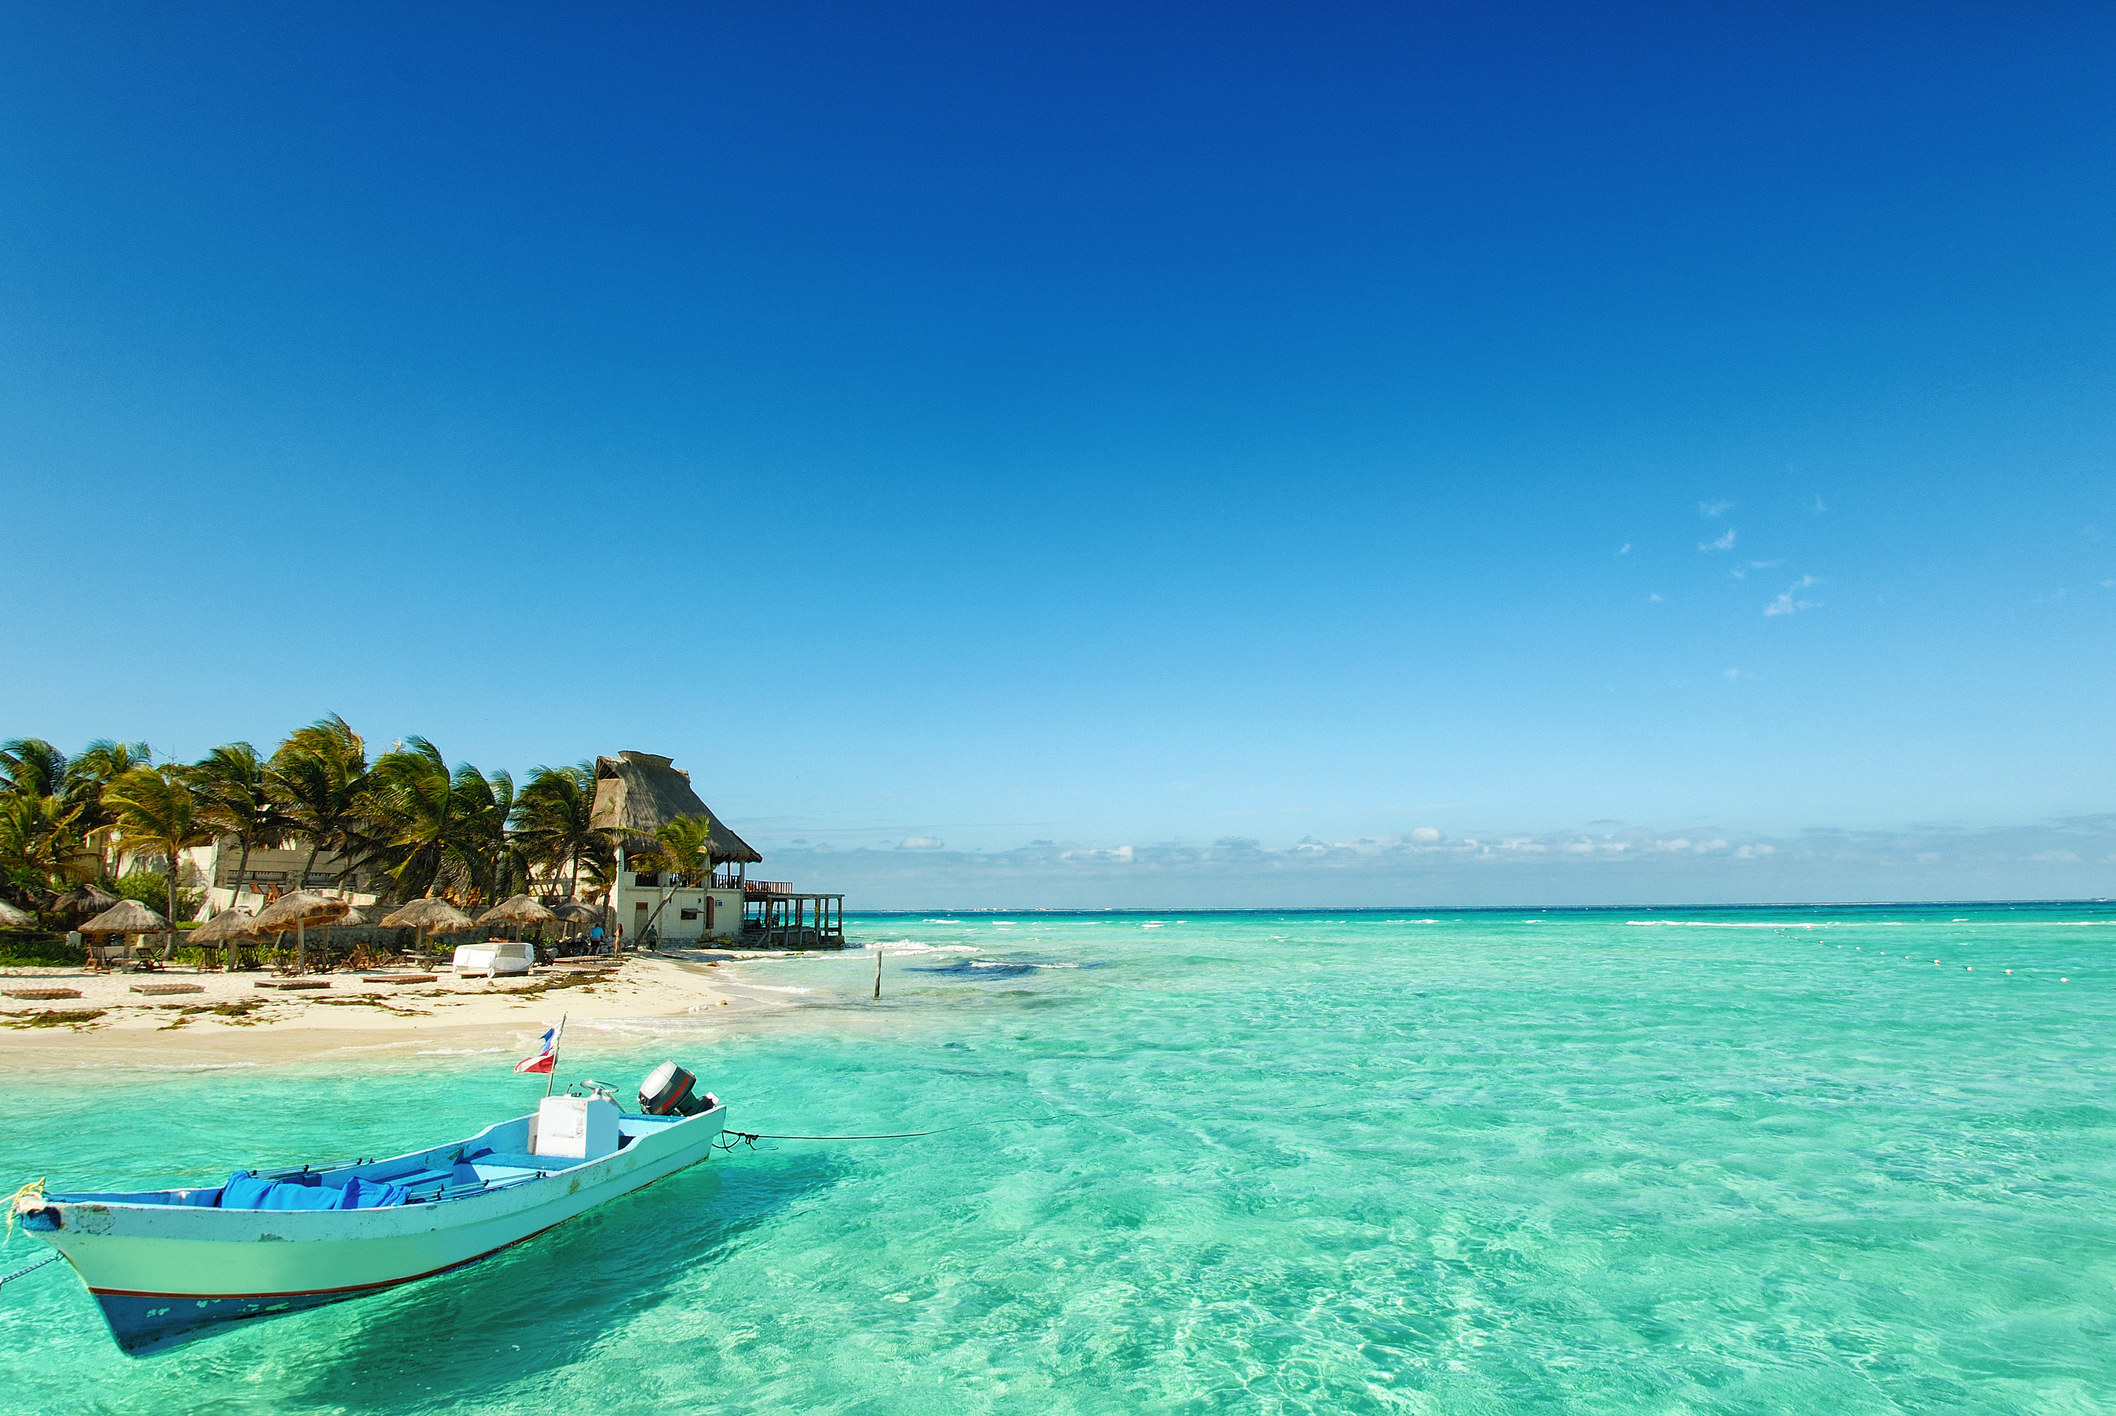 The beach in Isla Mujeres in Mexico.